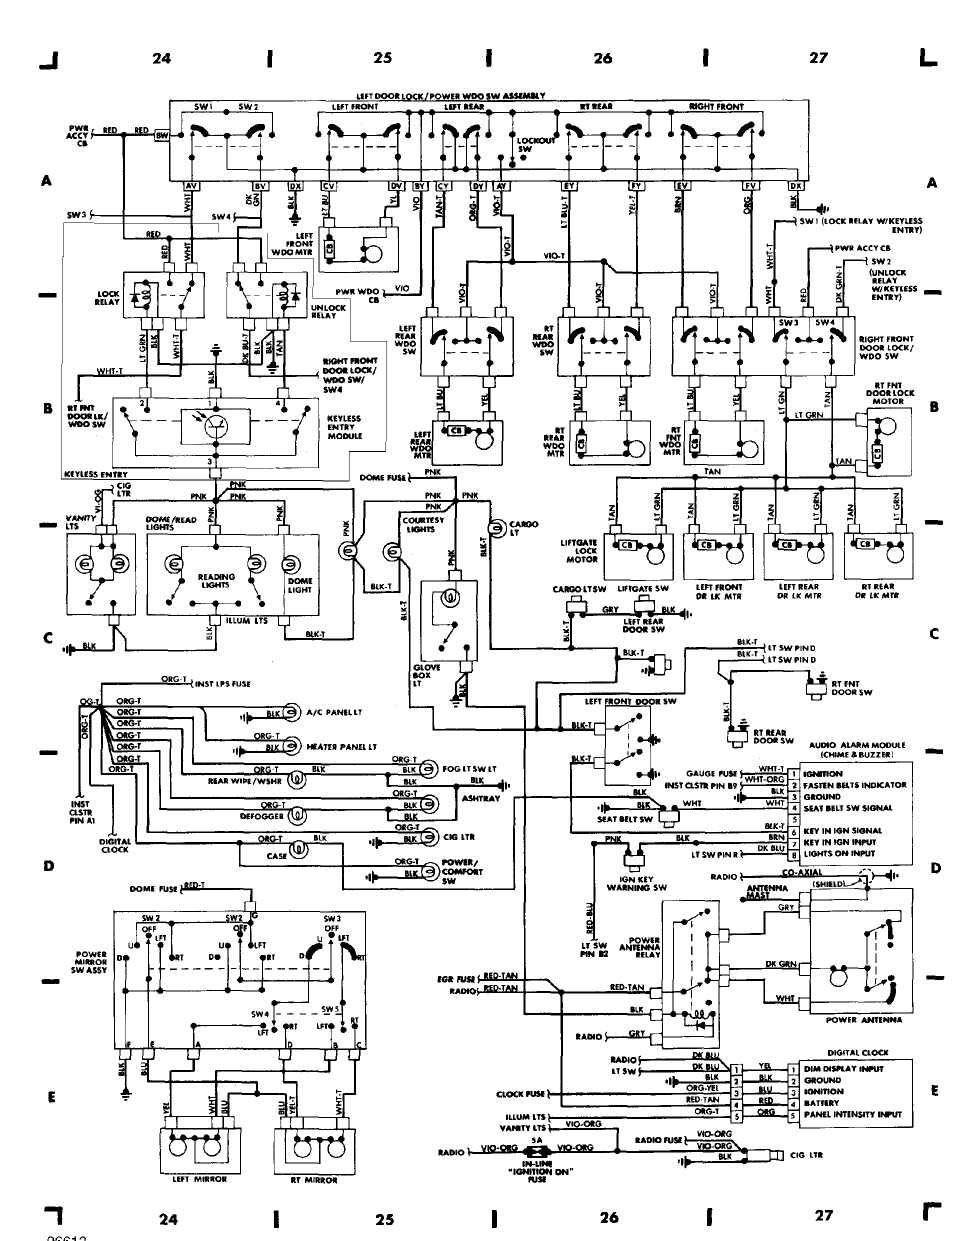 wiring_diagrams_html_61f5e0ad wiring diagrams 1984 1991 jeep cherokee (xj) jeep wiring diagram for 1991 jeep wrangler 4.0 at reclaimingppi.co